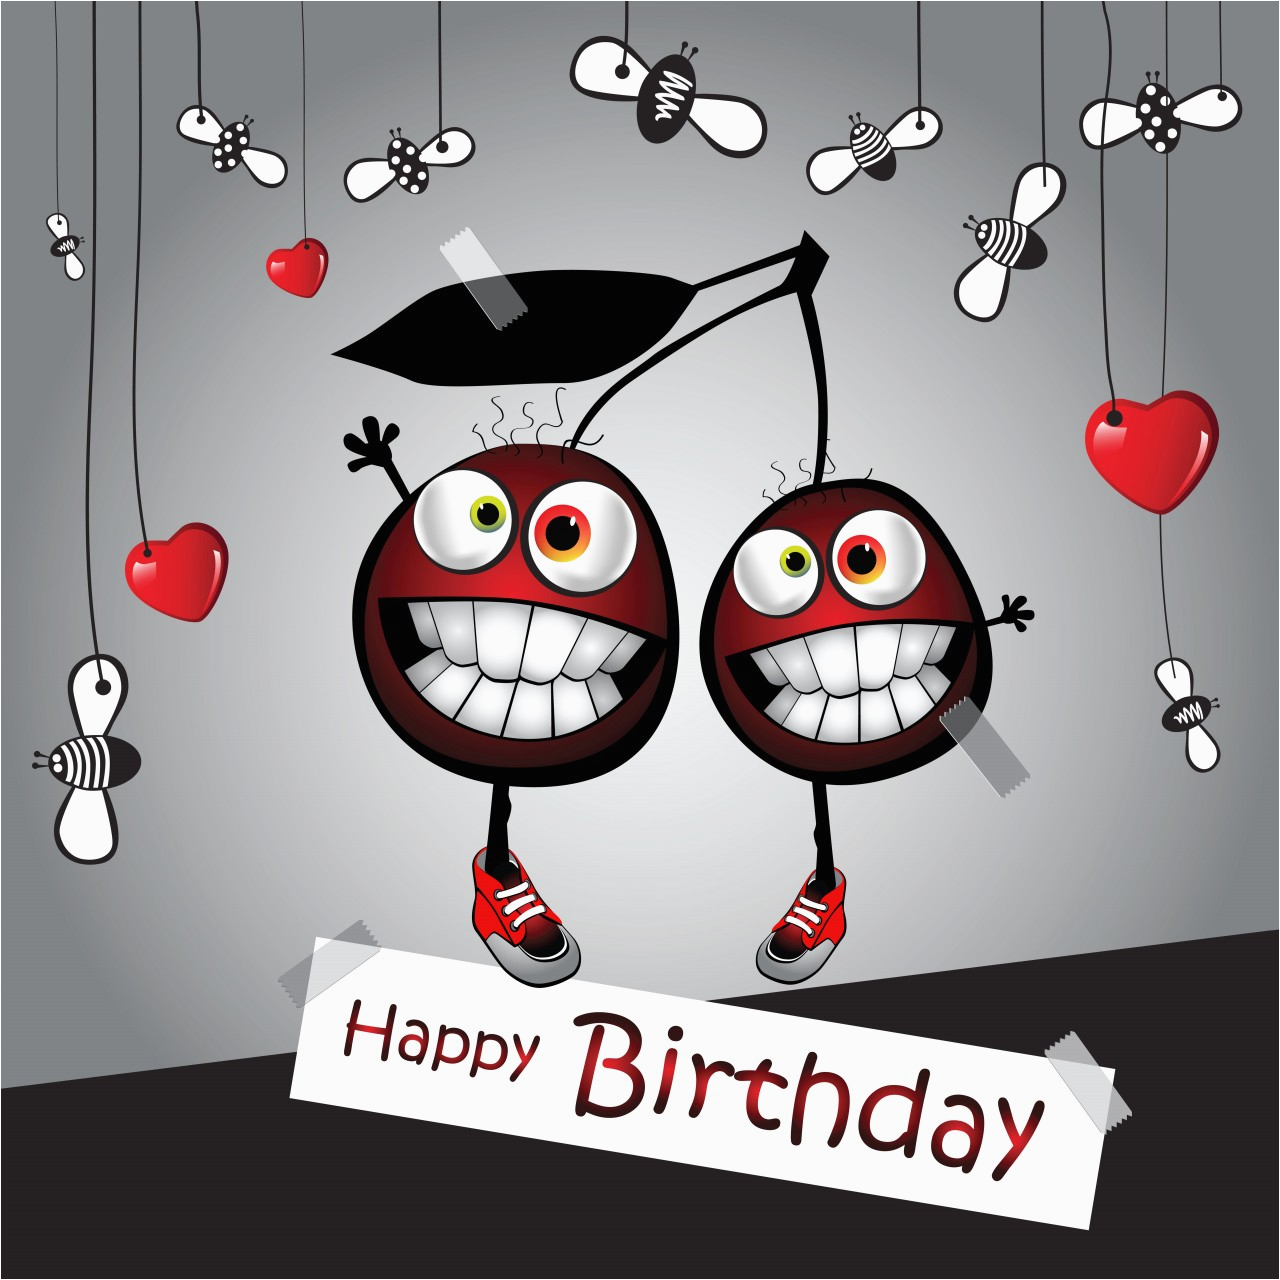 happy birthday images for him with quotes